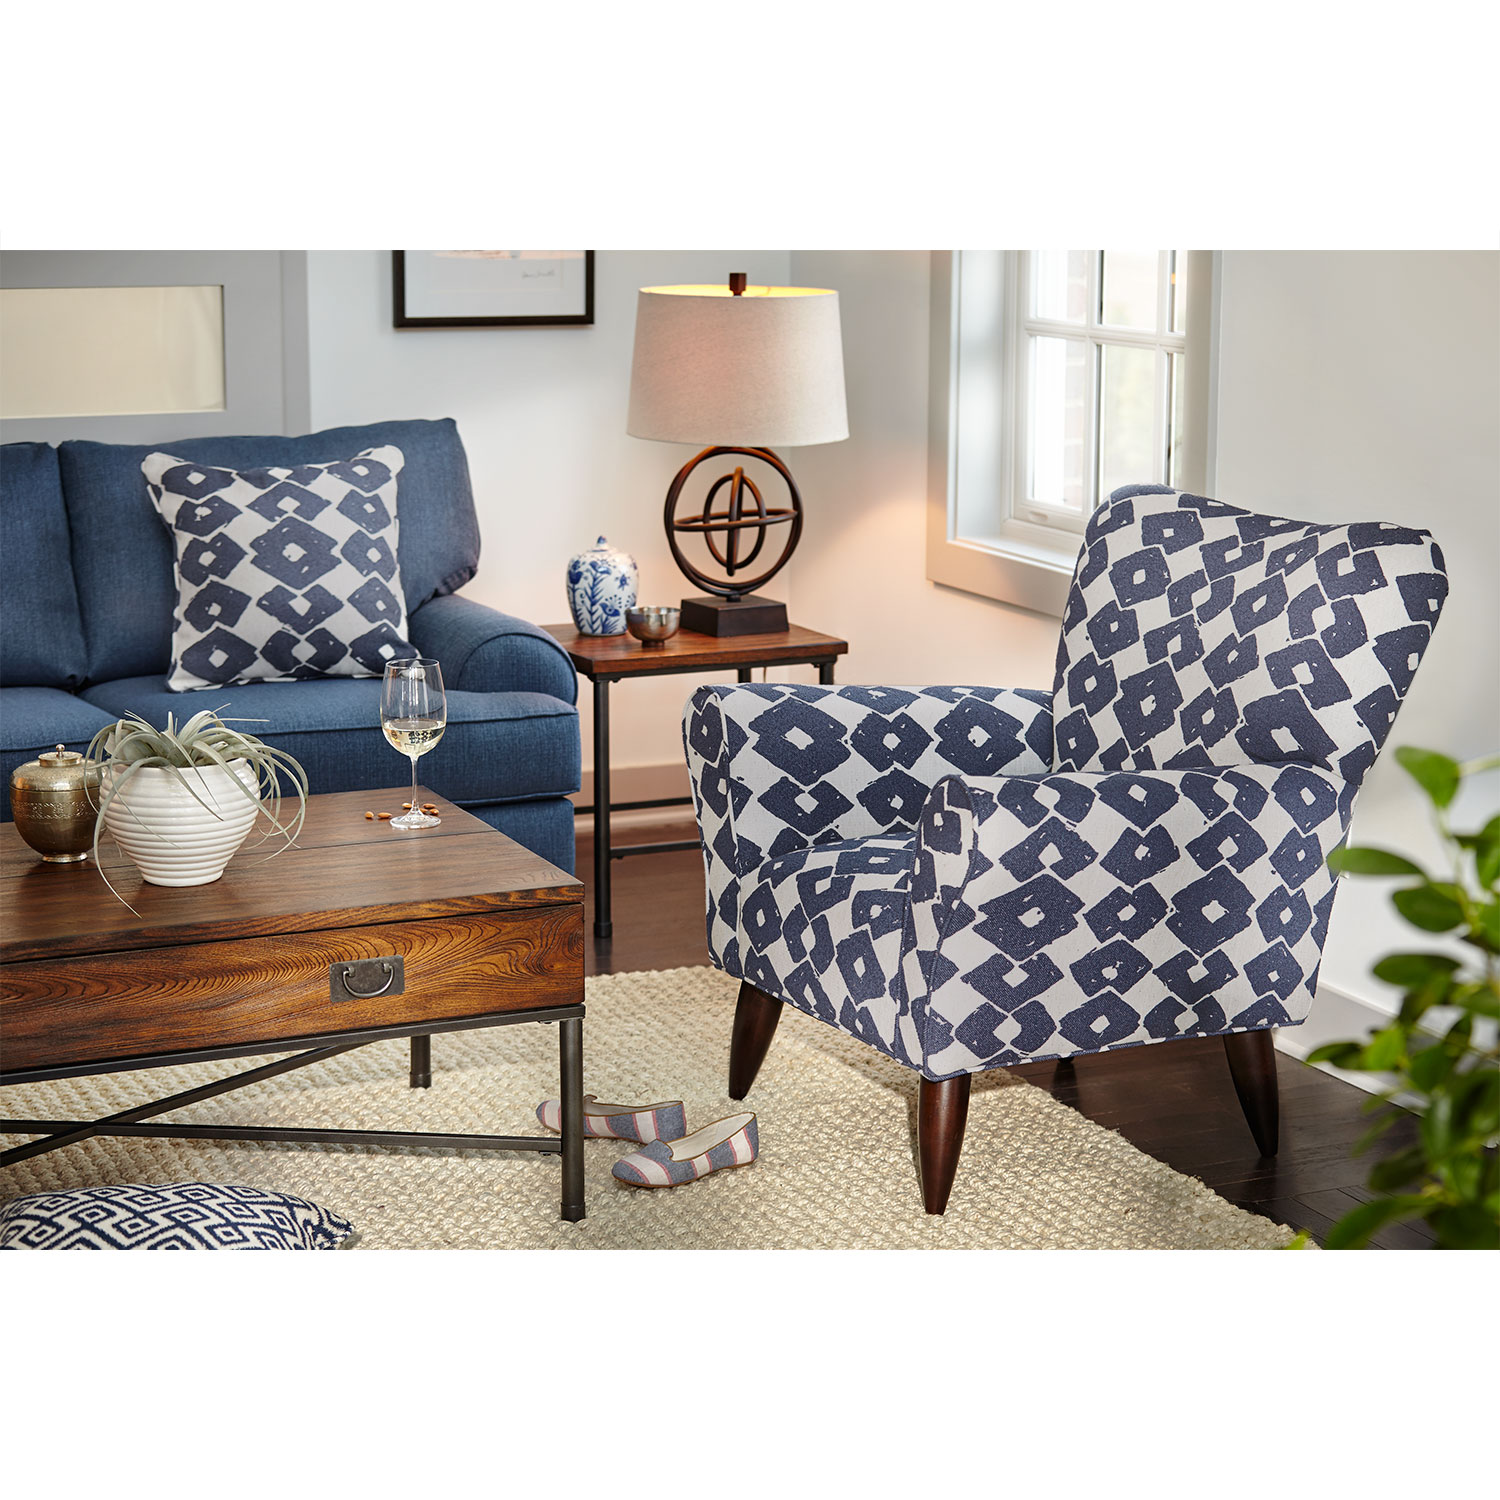 contemporary accent chairs for living room jessie accent chair - blue by kroehler KCEWSUB